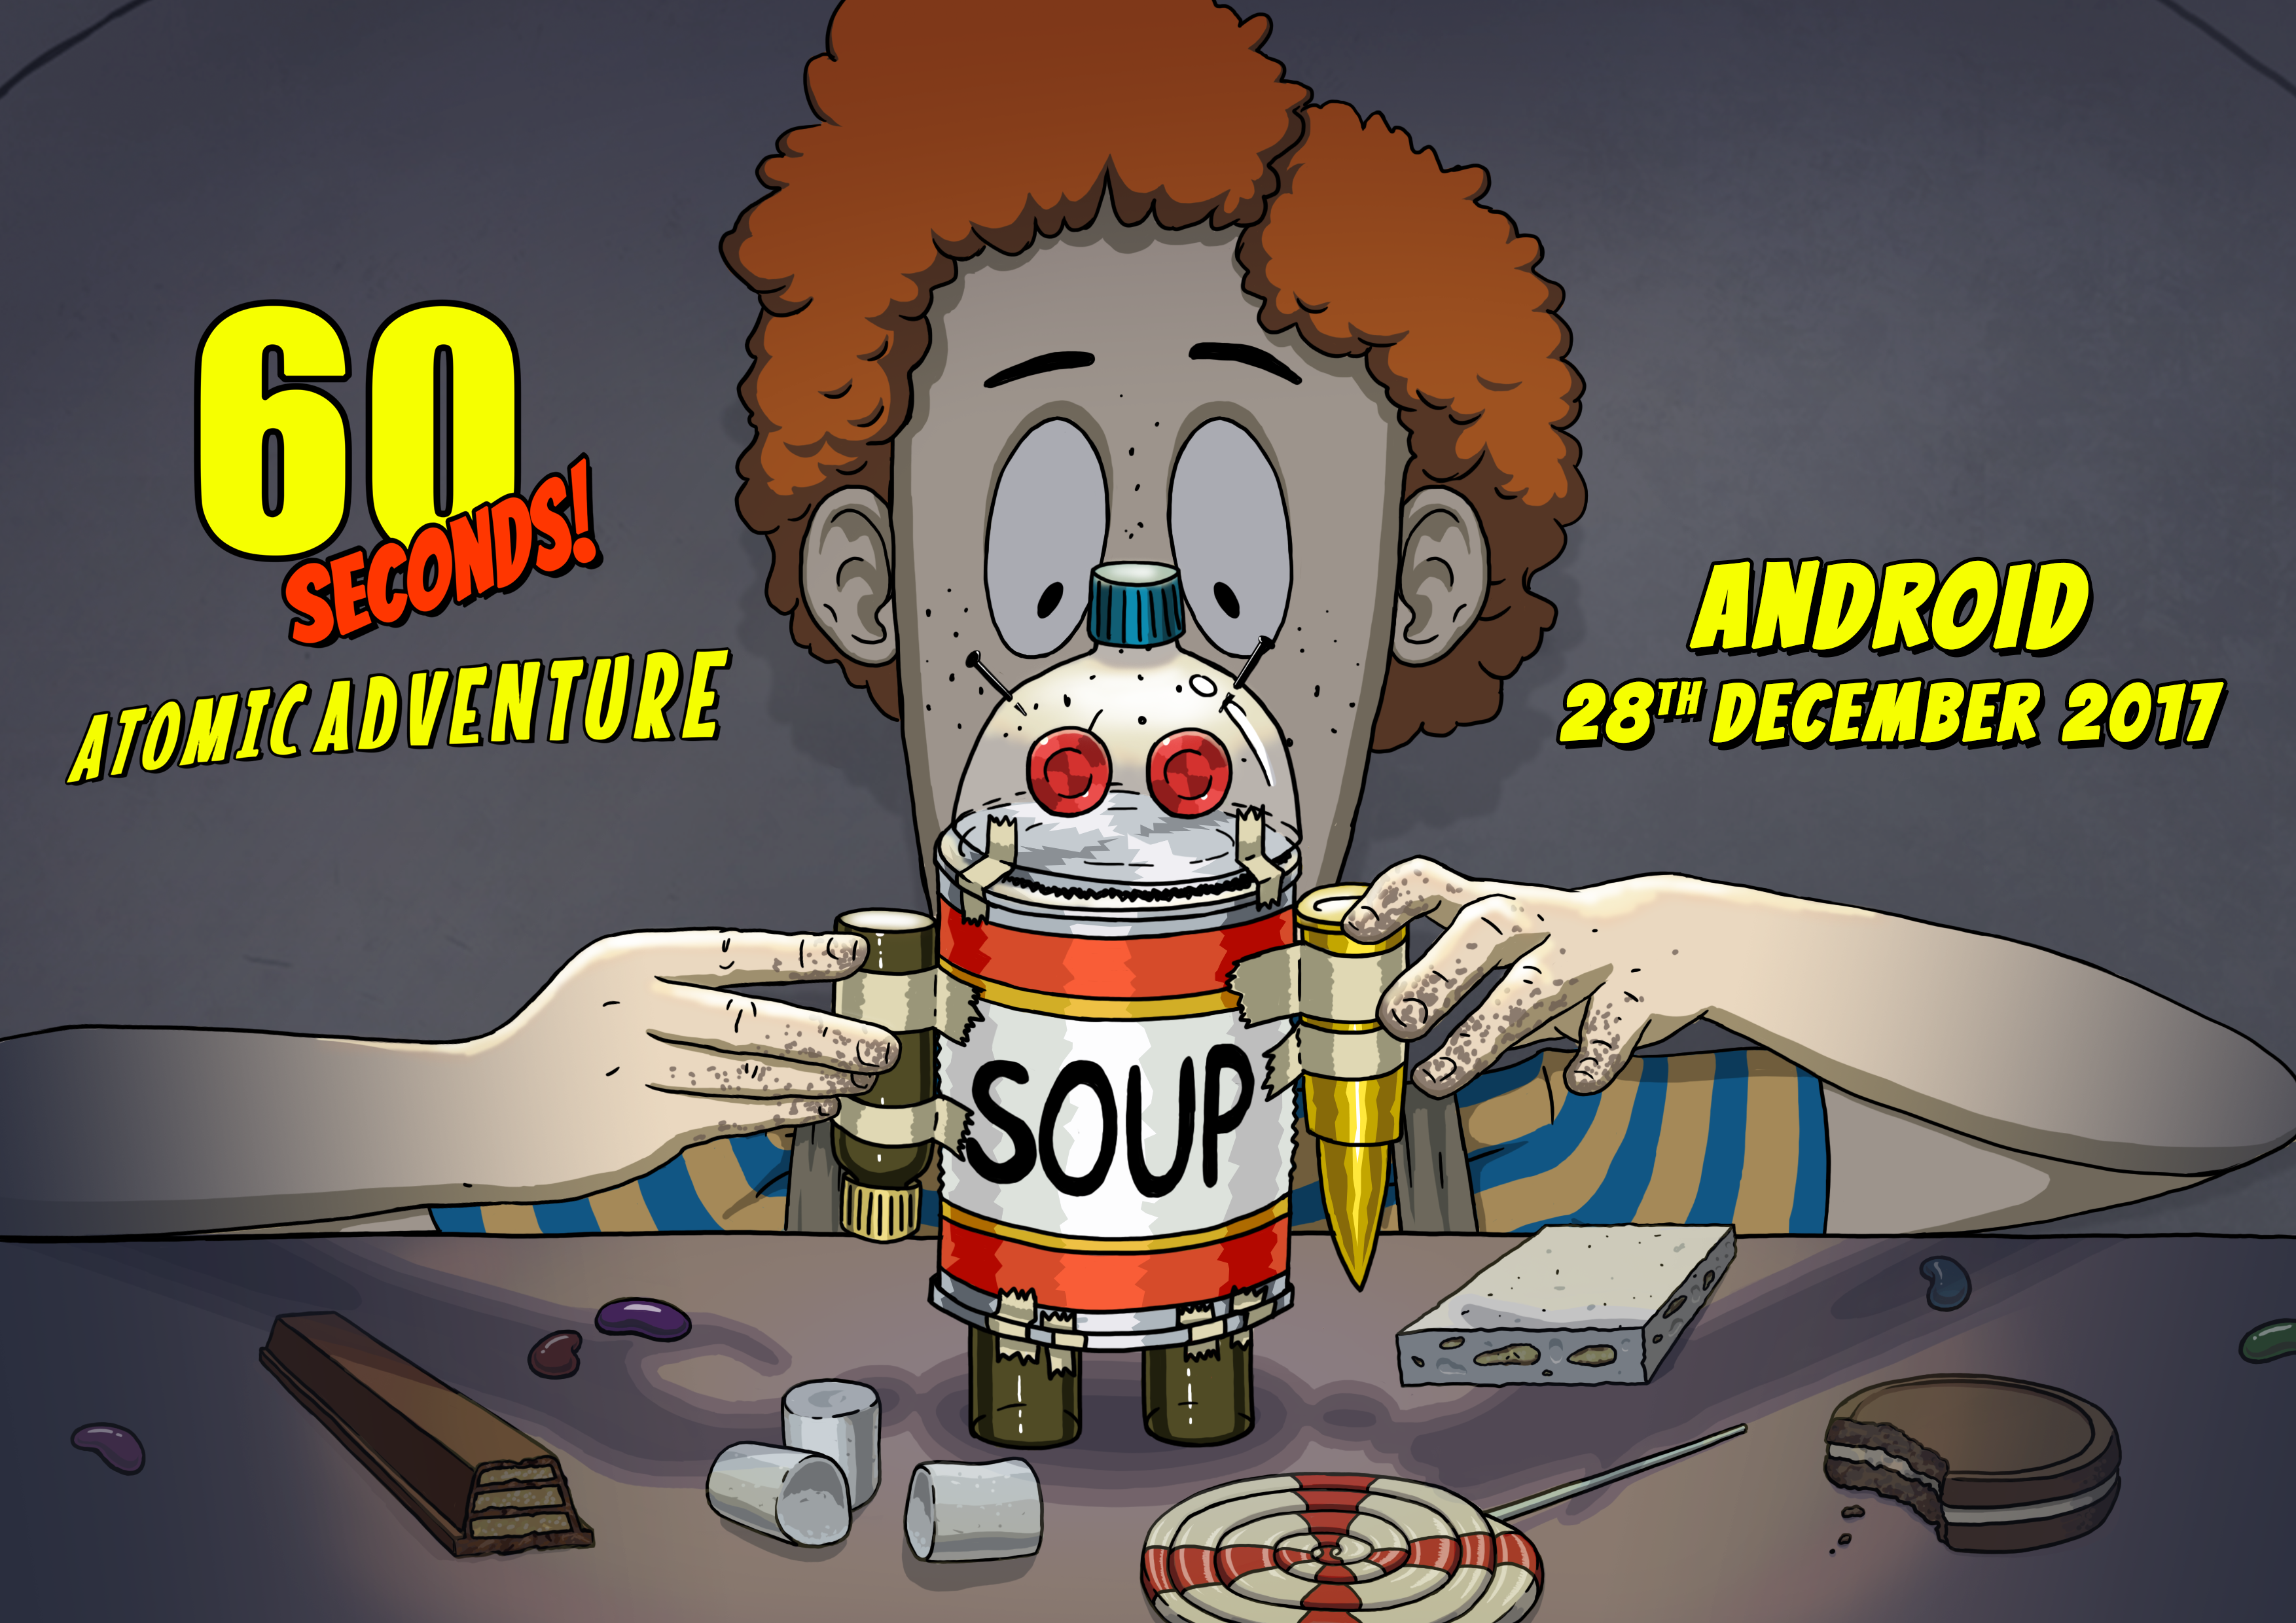 Avoid impending impact in 60 Seconds! Atomic Adventure, launching soon on Android